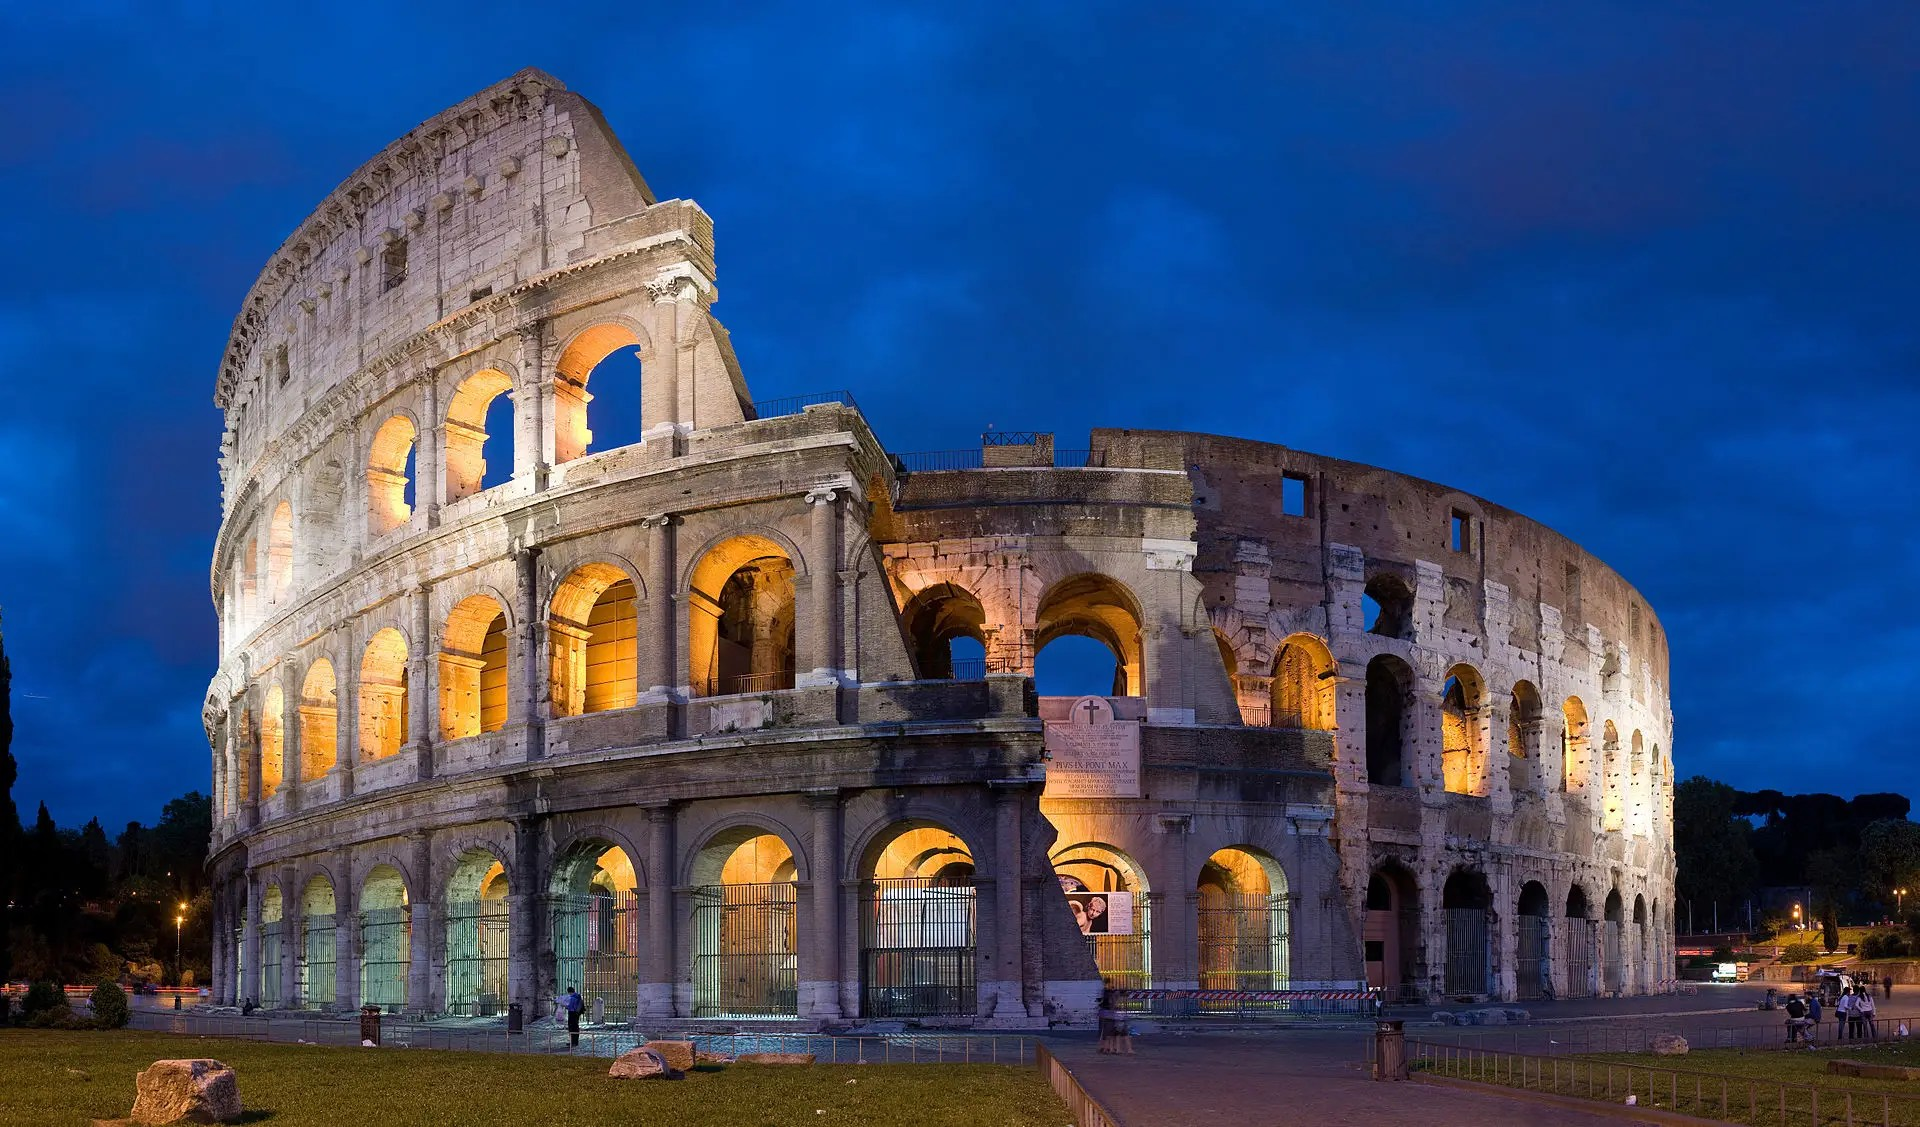 Rome took the lead with 400,000 people by 100 B.C.